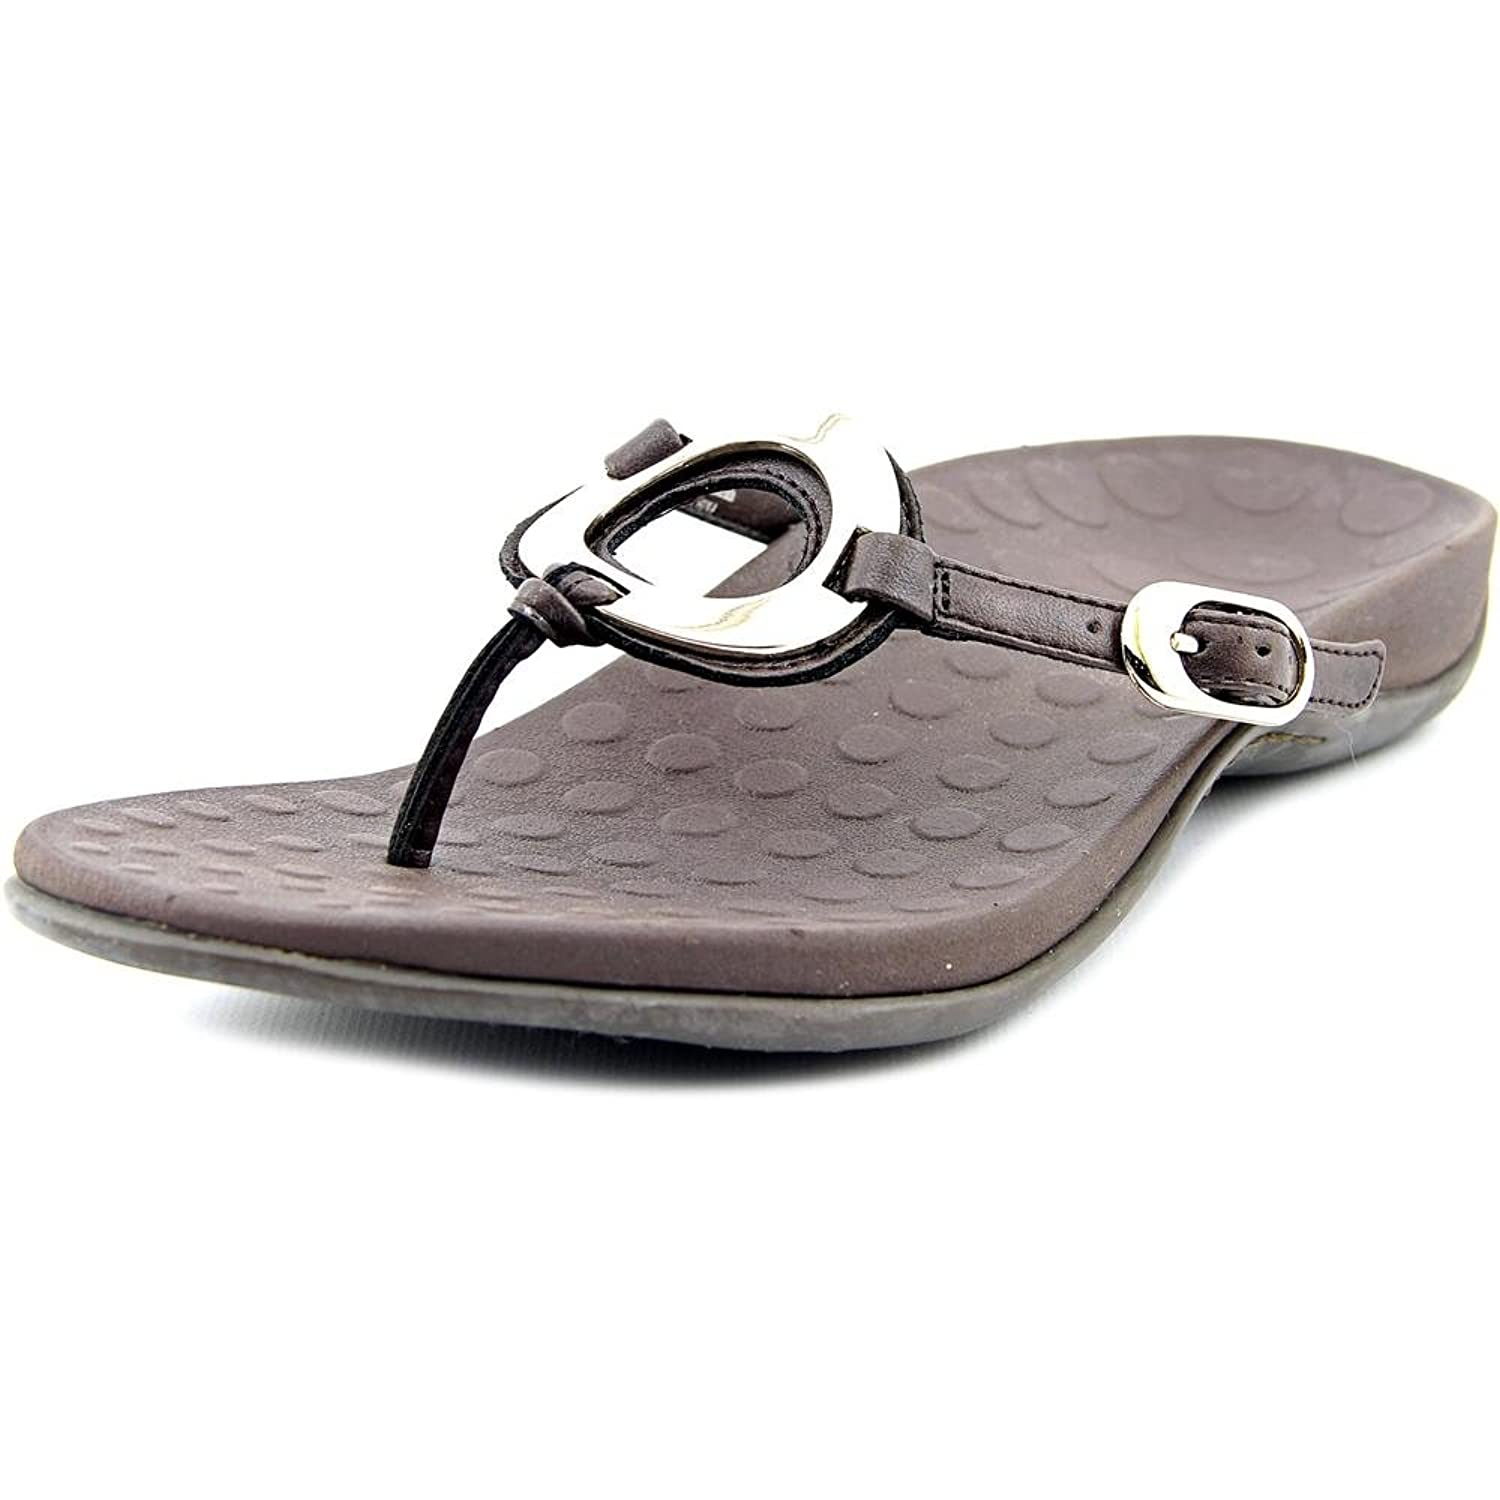 c692aeade53c Orthaheel by Vionic Yolanda Open Toe Synthetic Thong Sandal on sale ...